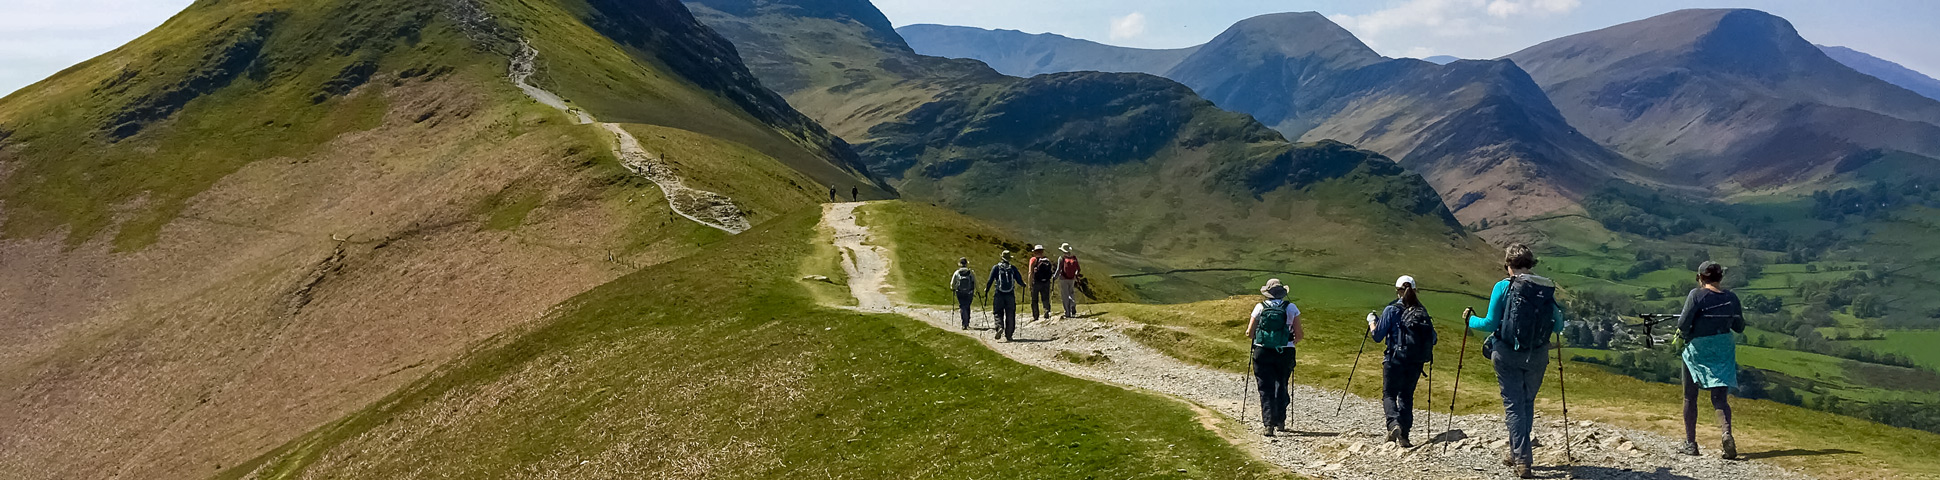 Panoramic view from National Parks of the UK Walking Tour